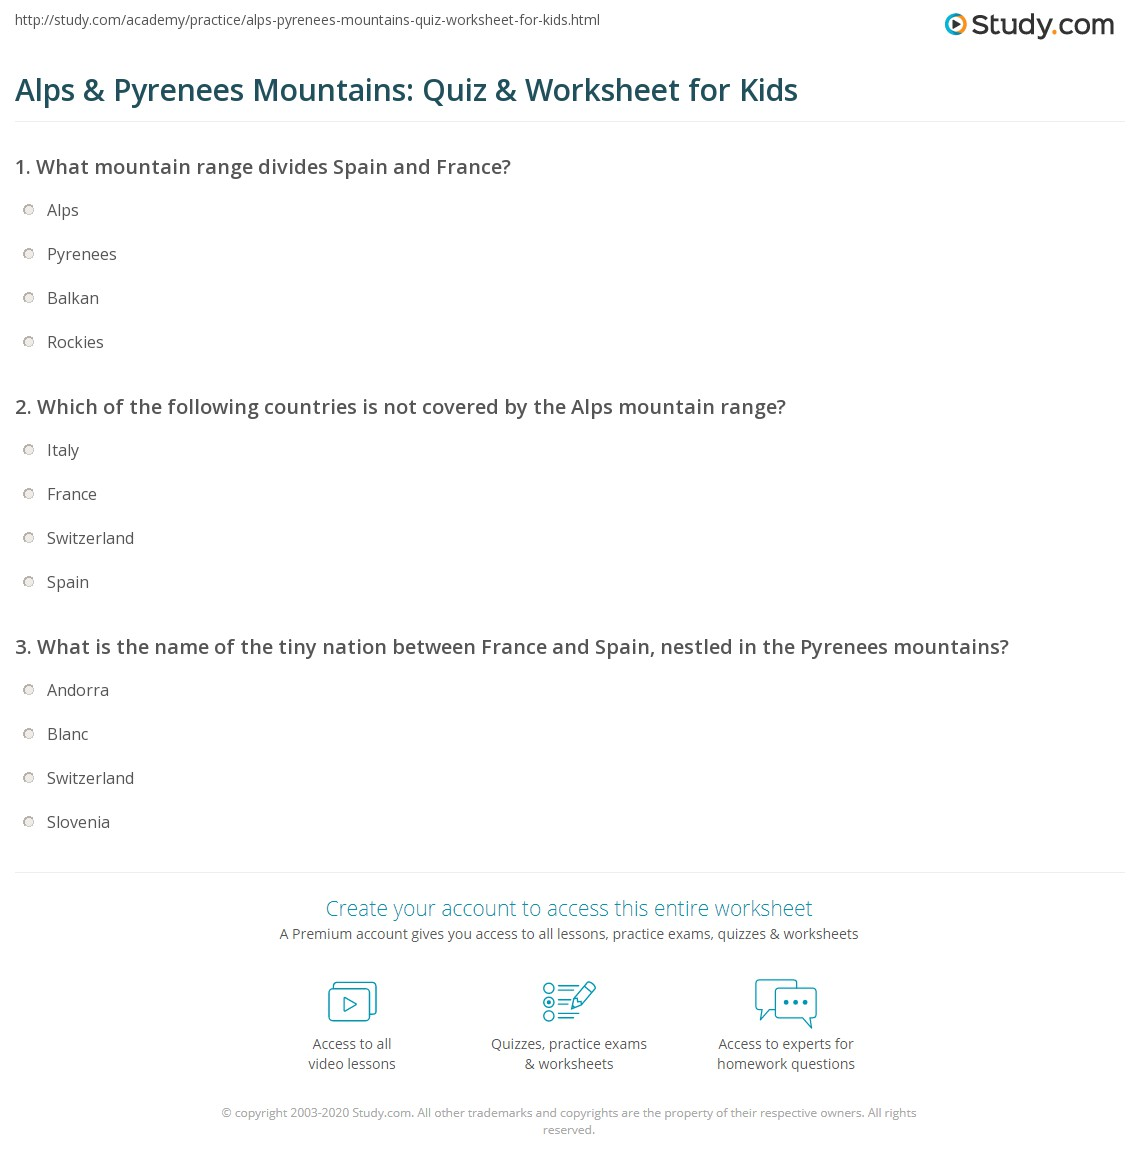 Alps Amp Pyrenees Mountains Quiz Amp Worksheet For Kids